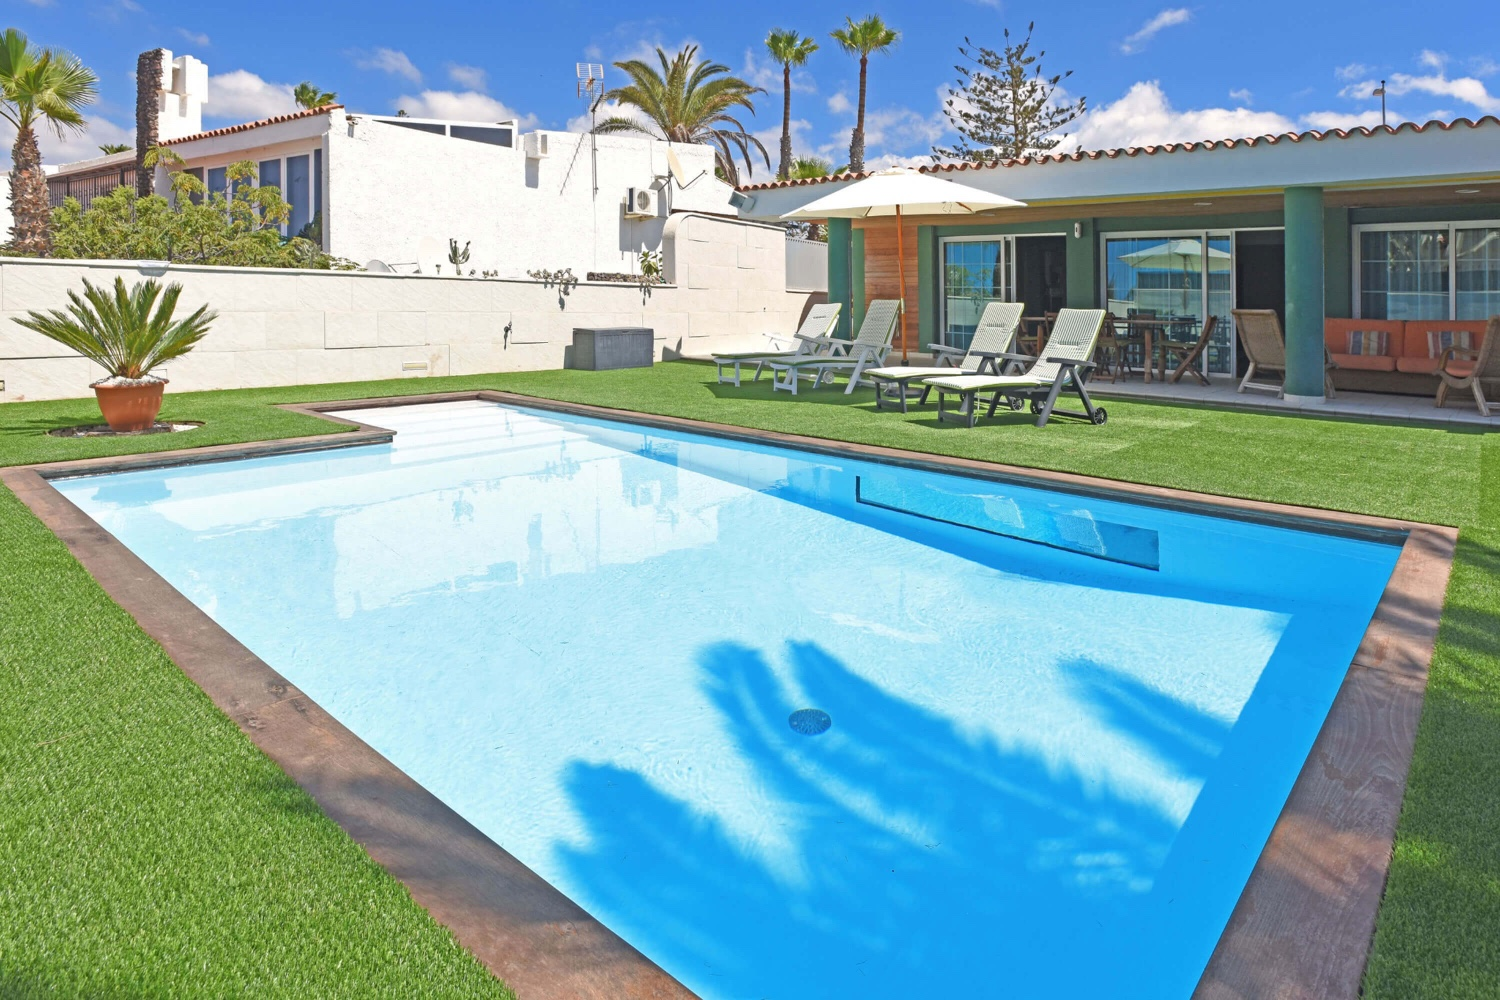 Beautiful villa to rent with spacious rooms and private pool near Playa del Inglés on Gran Canaria